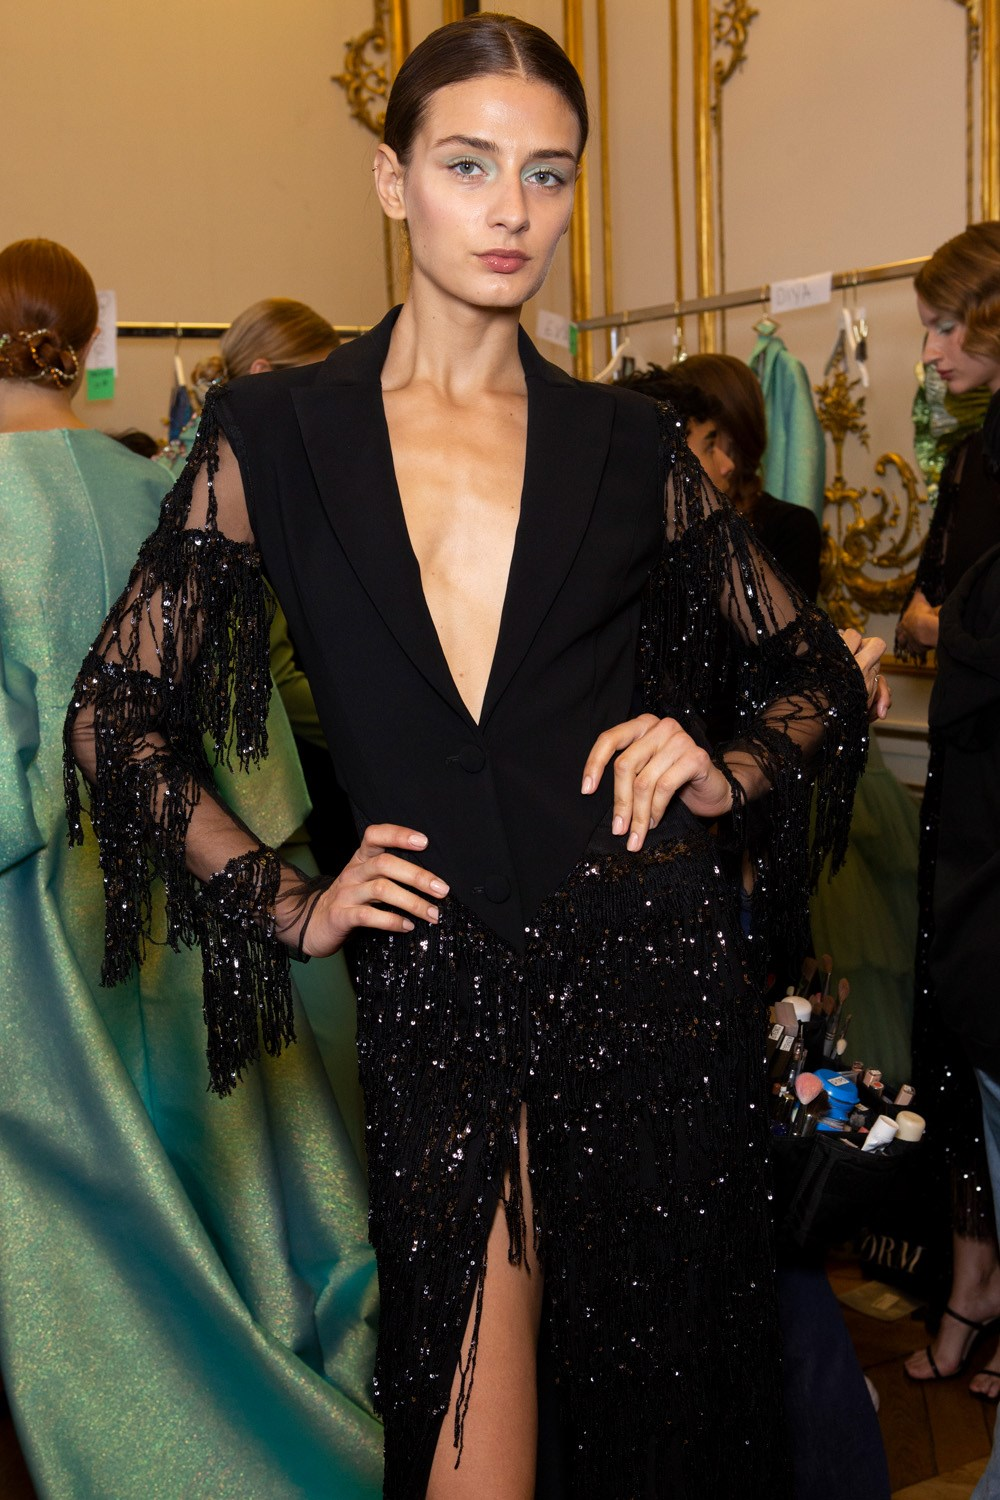 Christian Siriano Spring 2020 Fashion Show Backstage